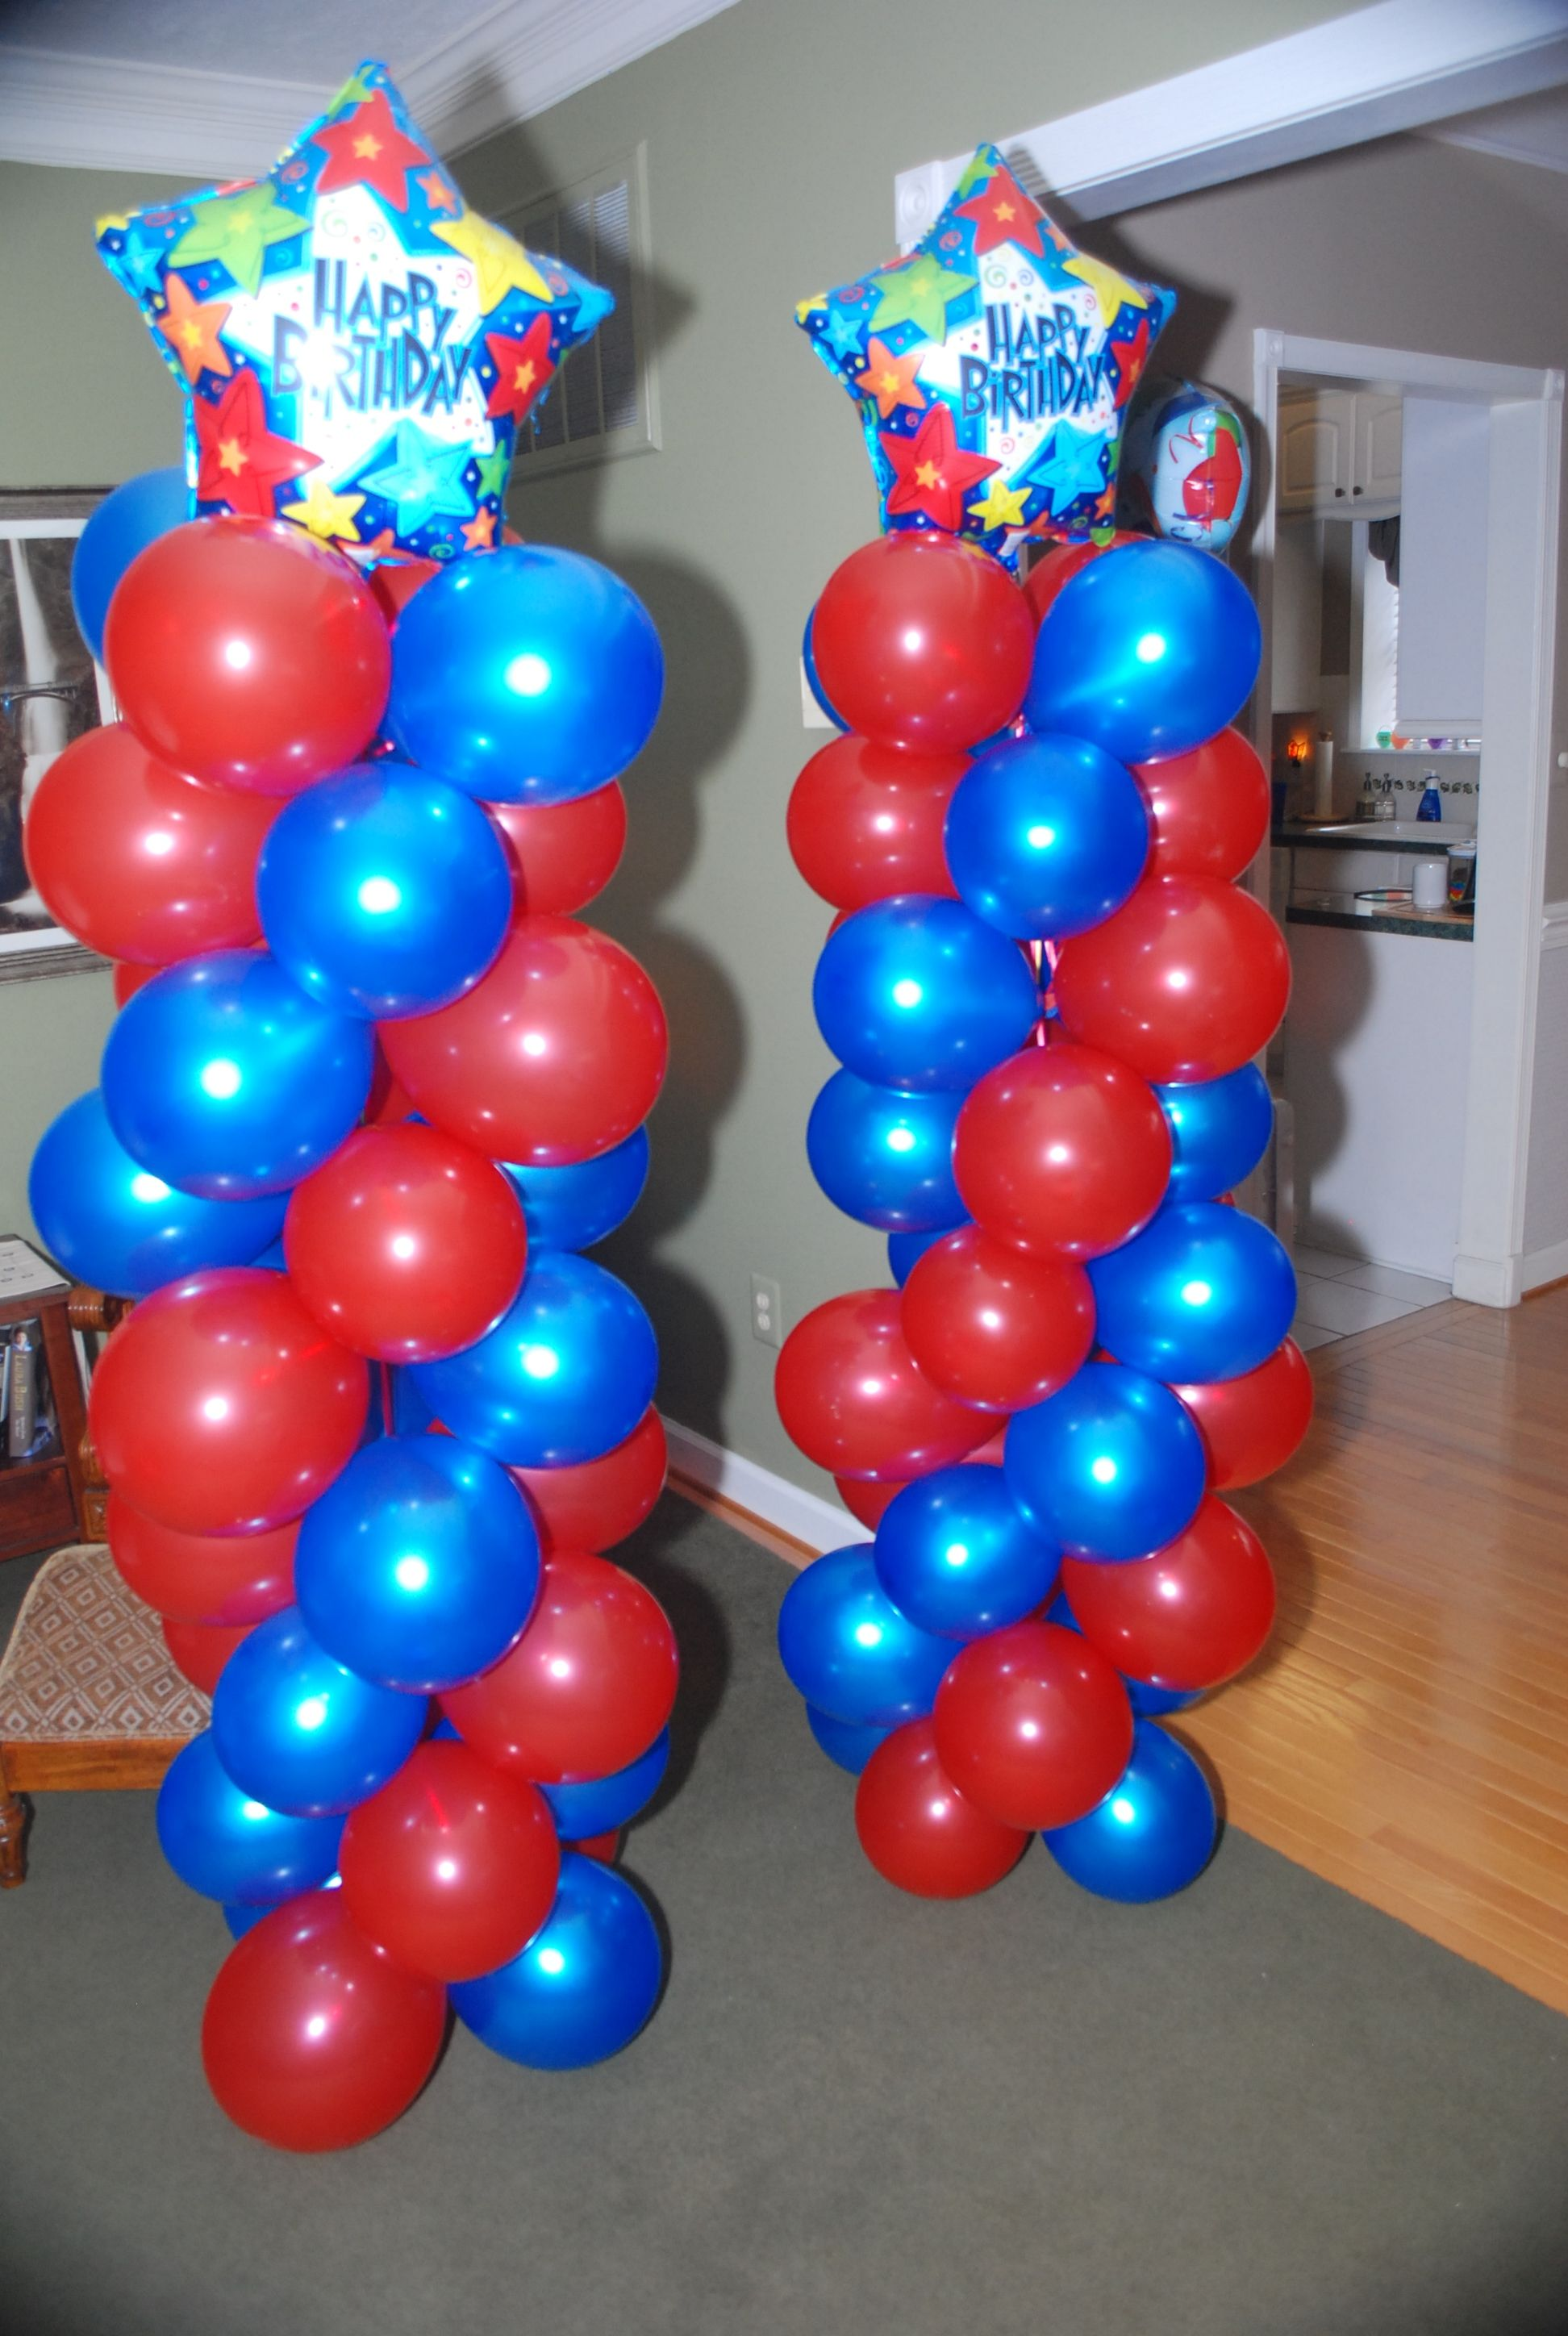 I made these balloon towers for my son s birthday party